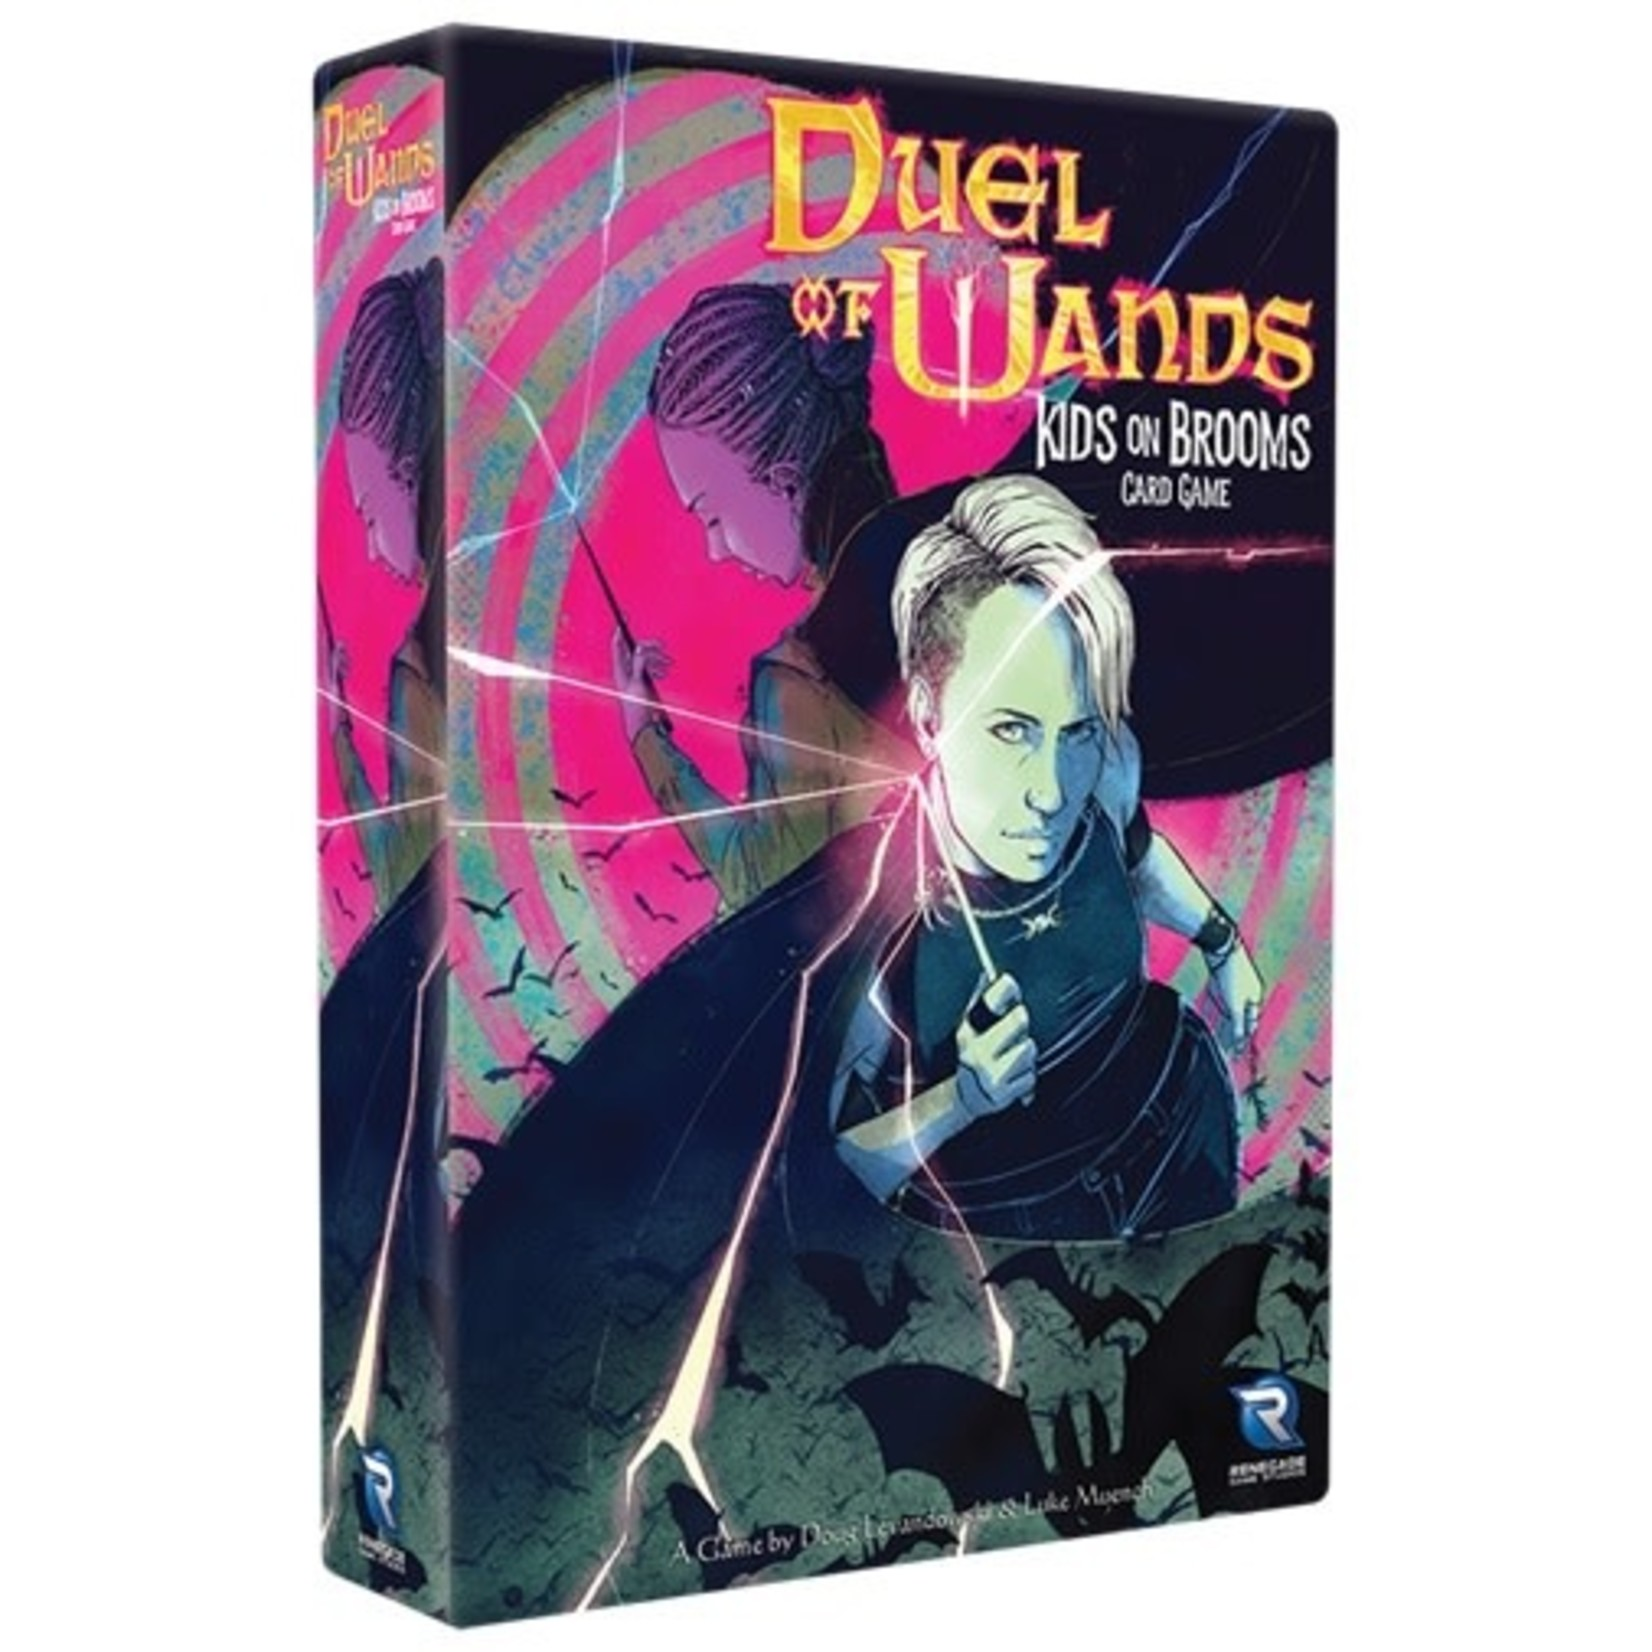 Renegade Duel of Wands - Kids on Brooms Card Game